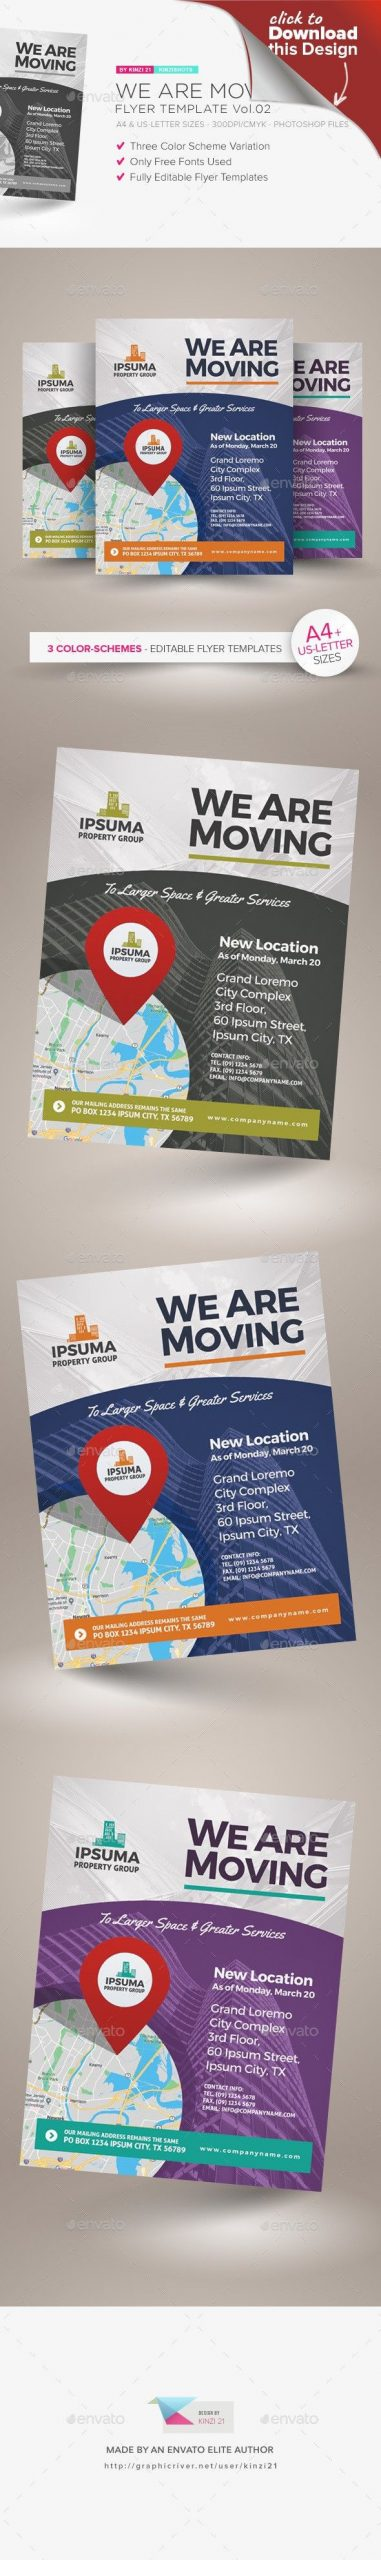 Business Moving Announcement Template